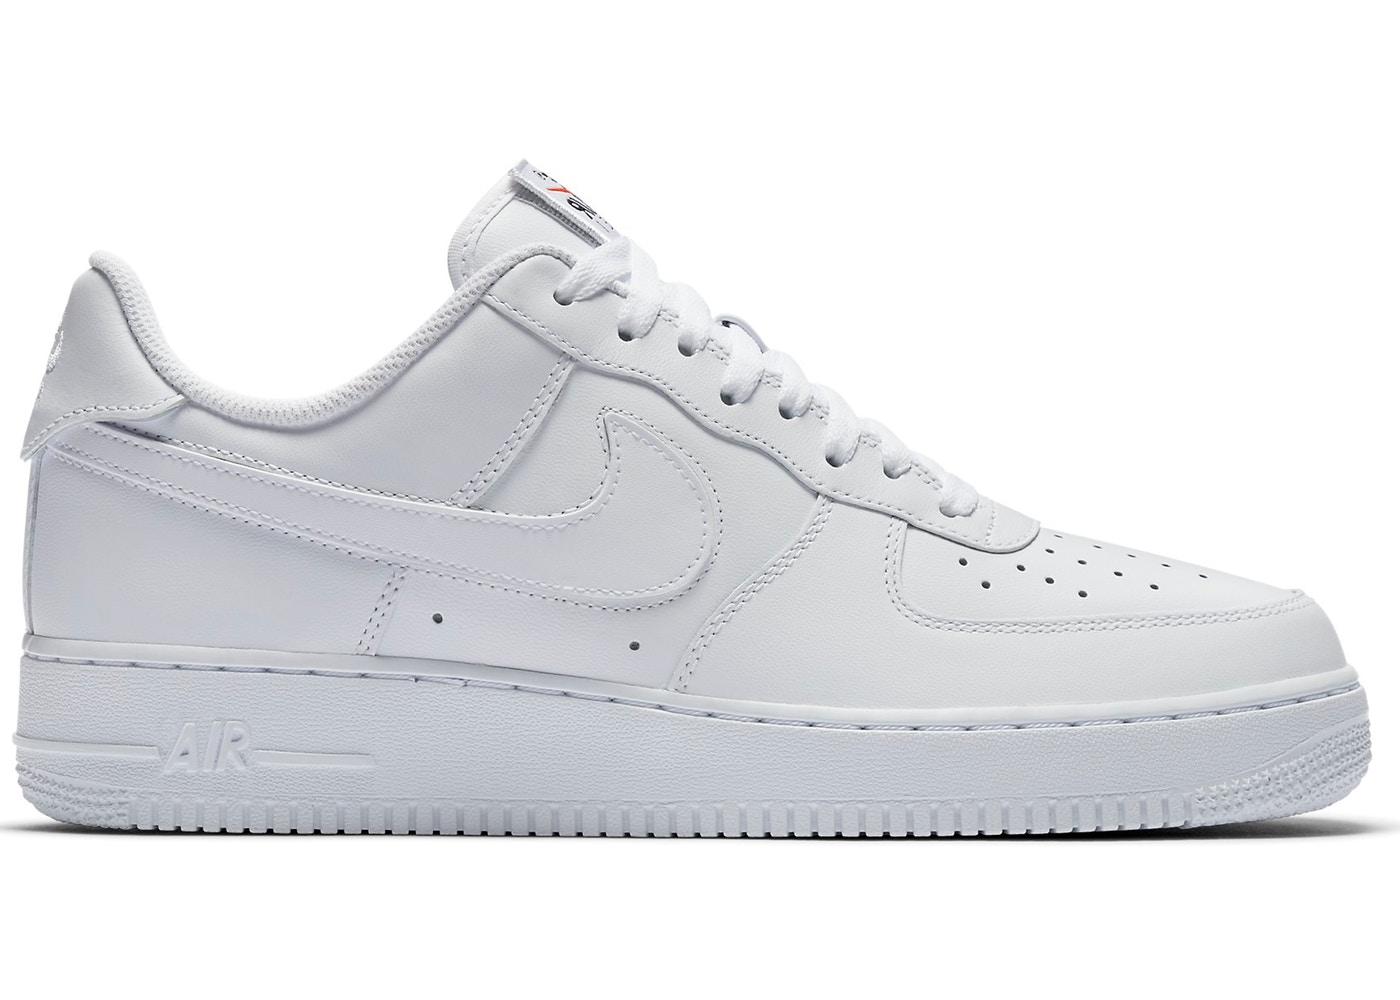 Nike Air Force 1 Low VFMuiAUM - collect.bussy-english.com 721e857a667